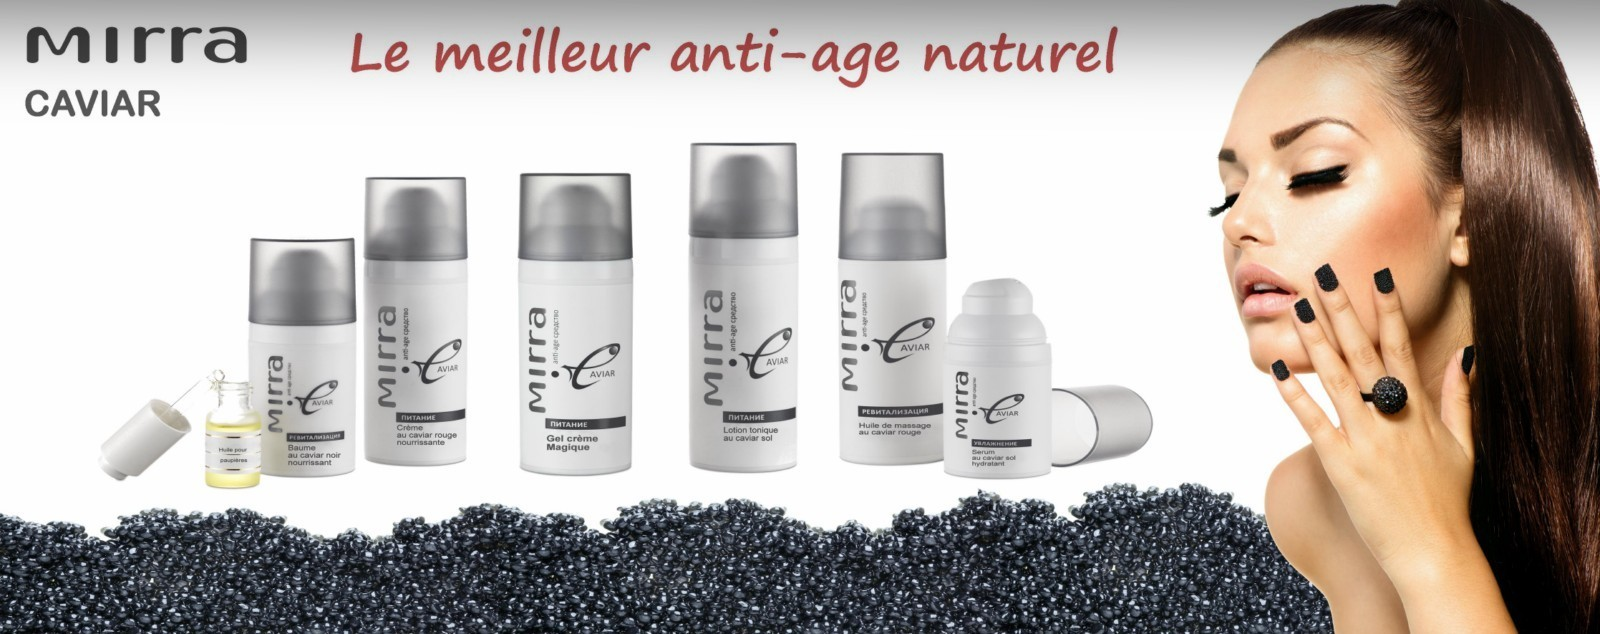 cosmetique caviar